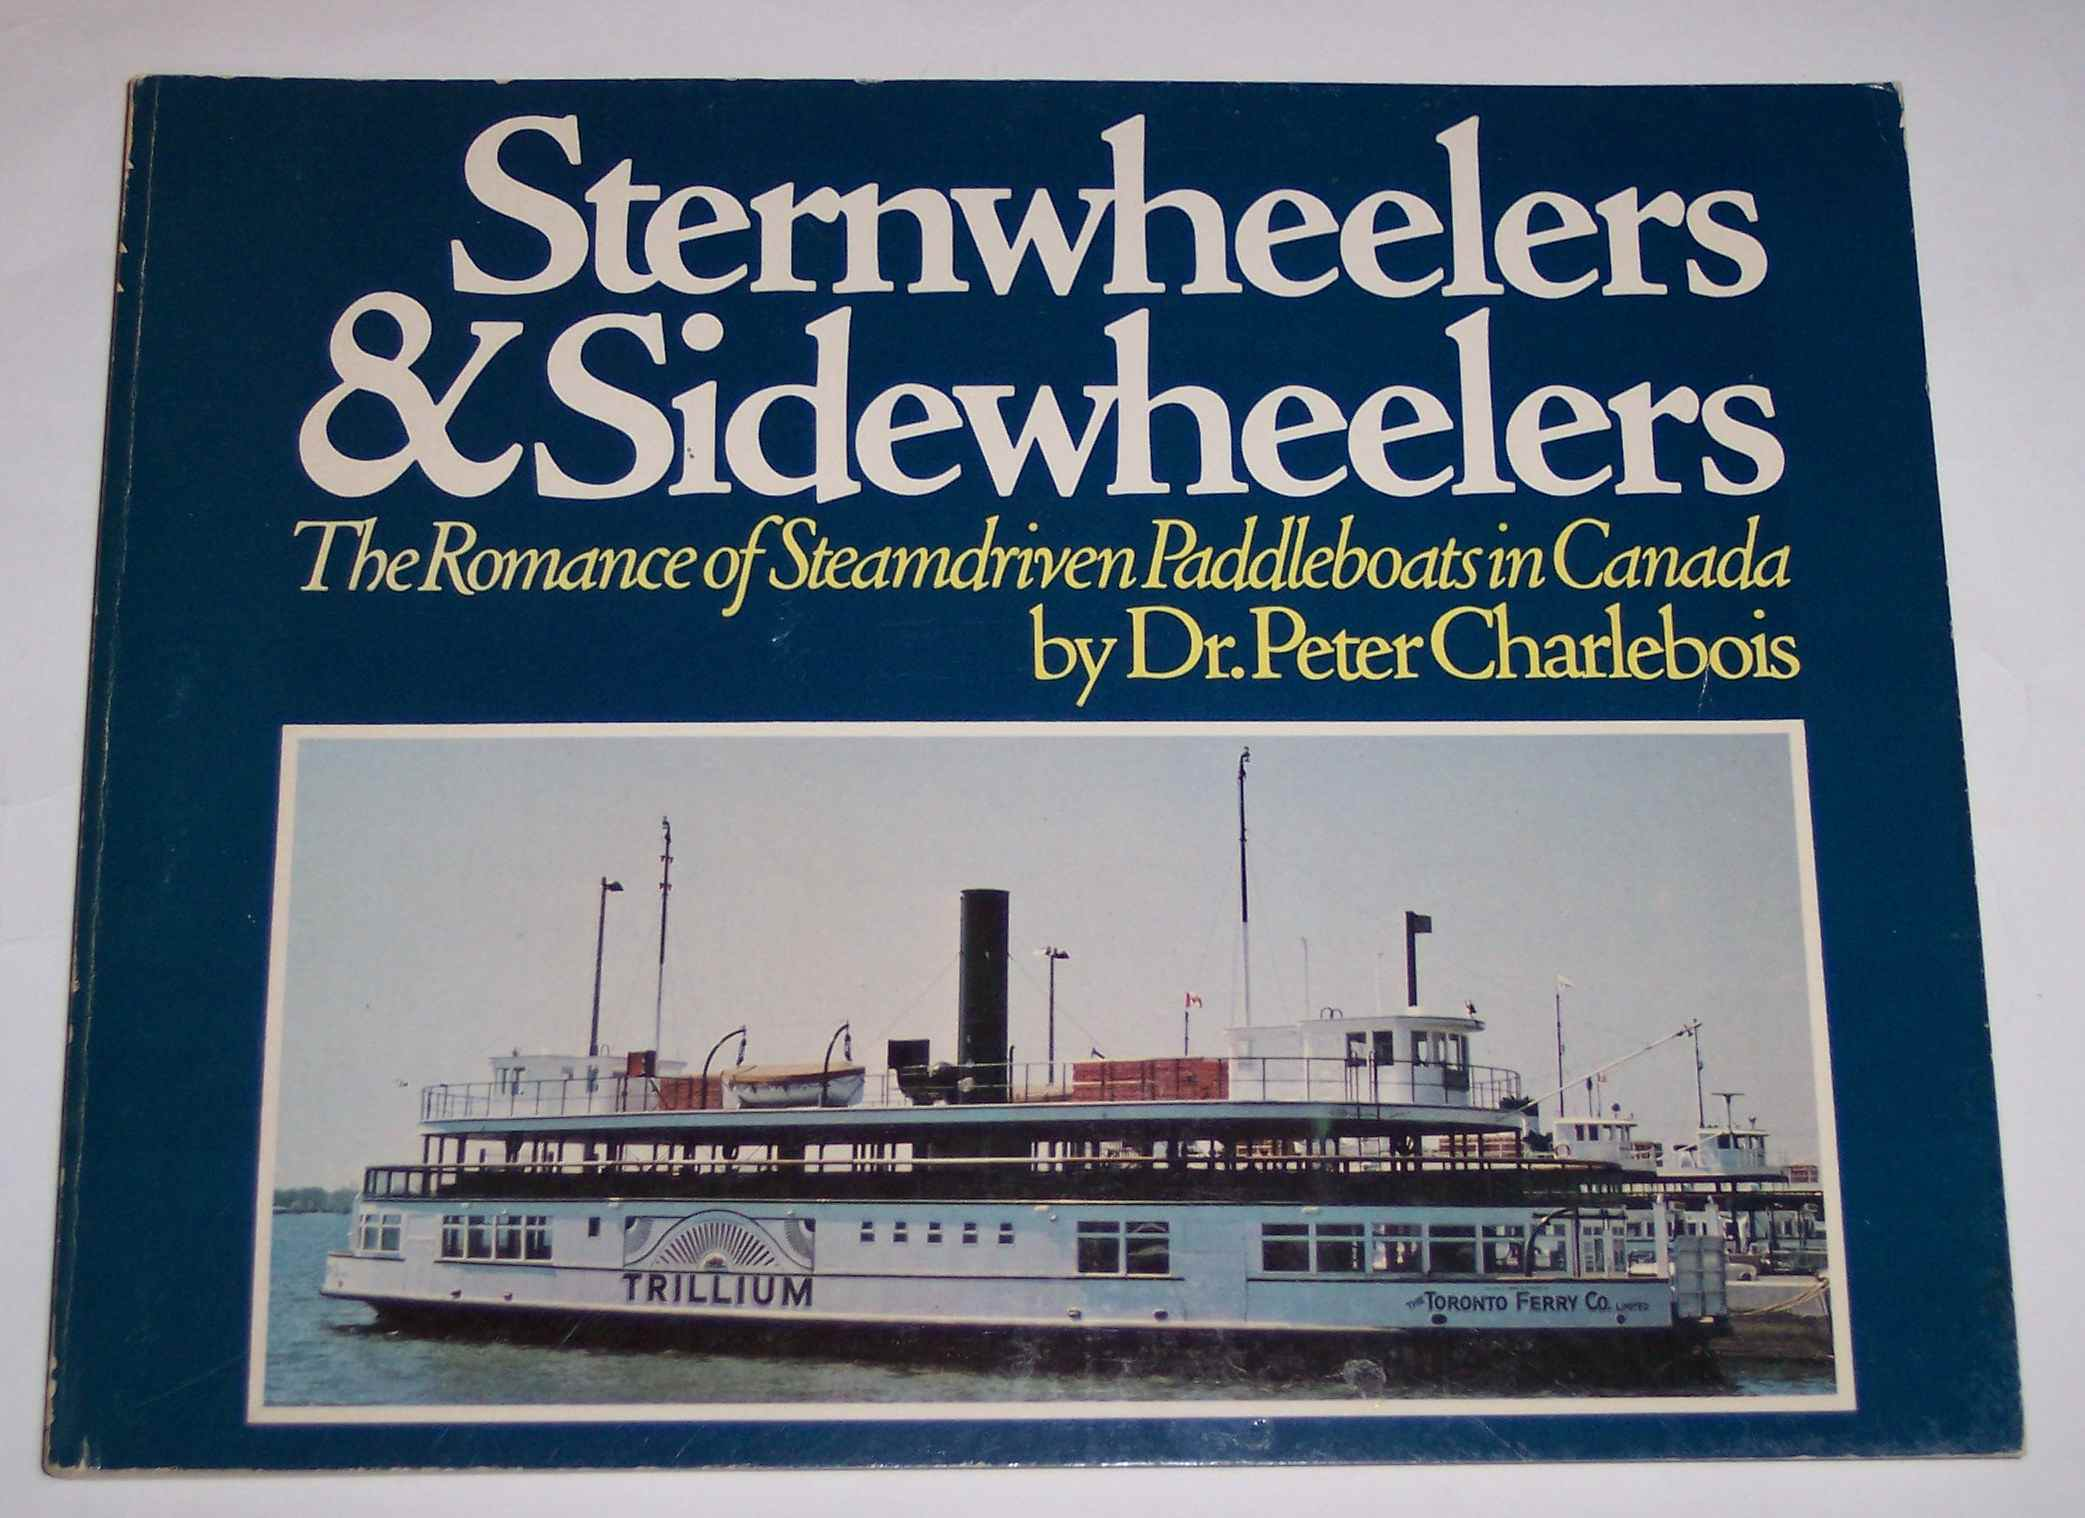 Image for Sternwheelers & Sidewheelers The Romance of Steamdriven Paddleboats in Canada